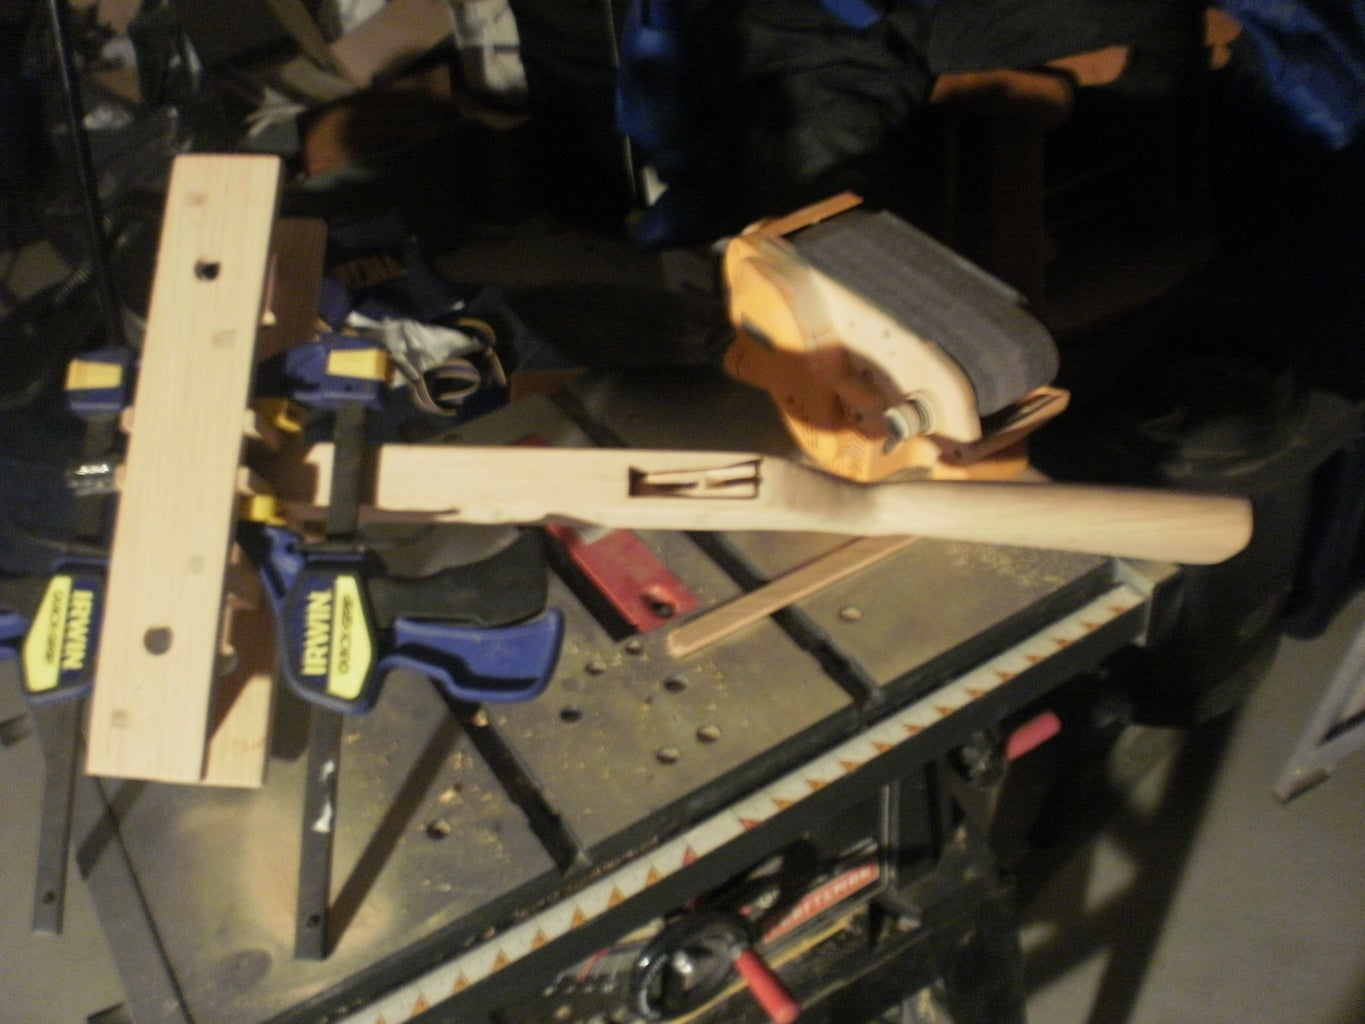 Attaching the Stock to the Main Frame and Attaching Arrow Guide